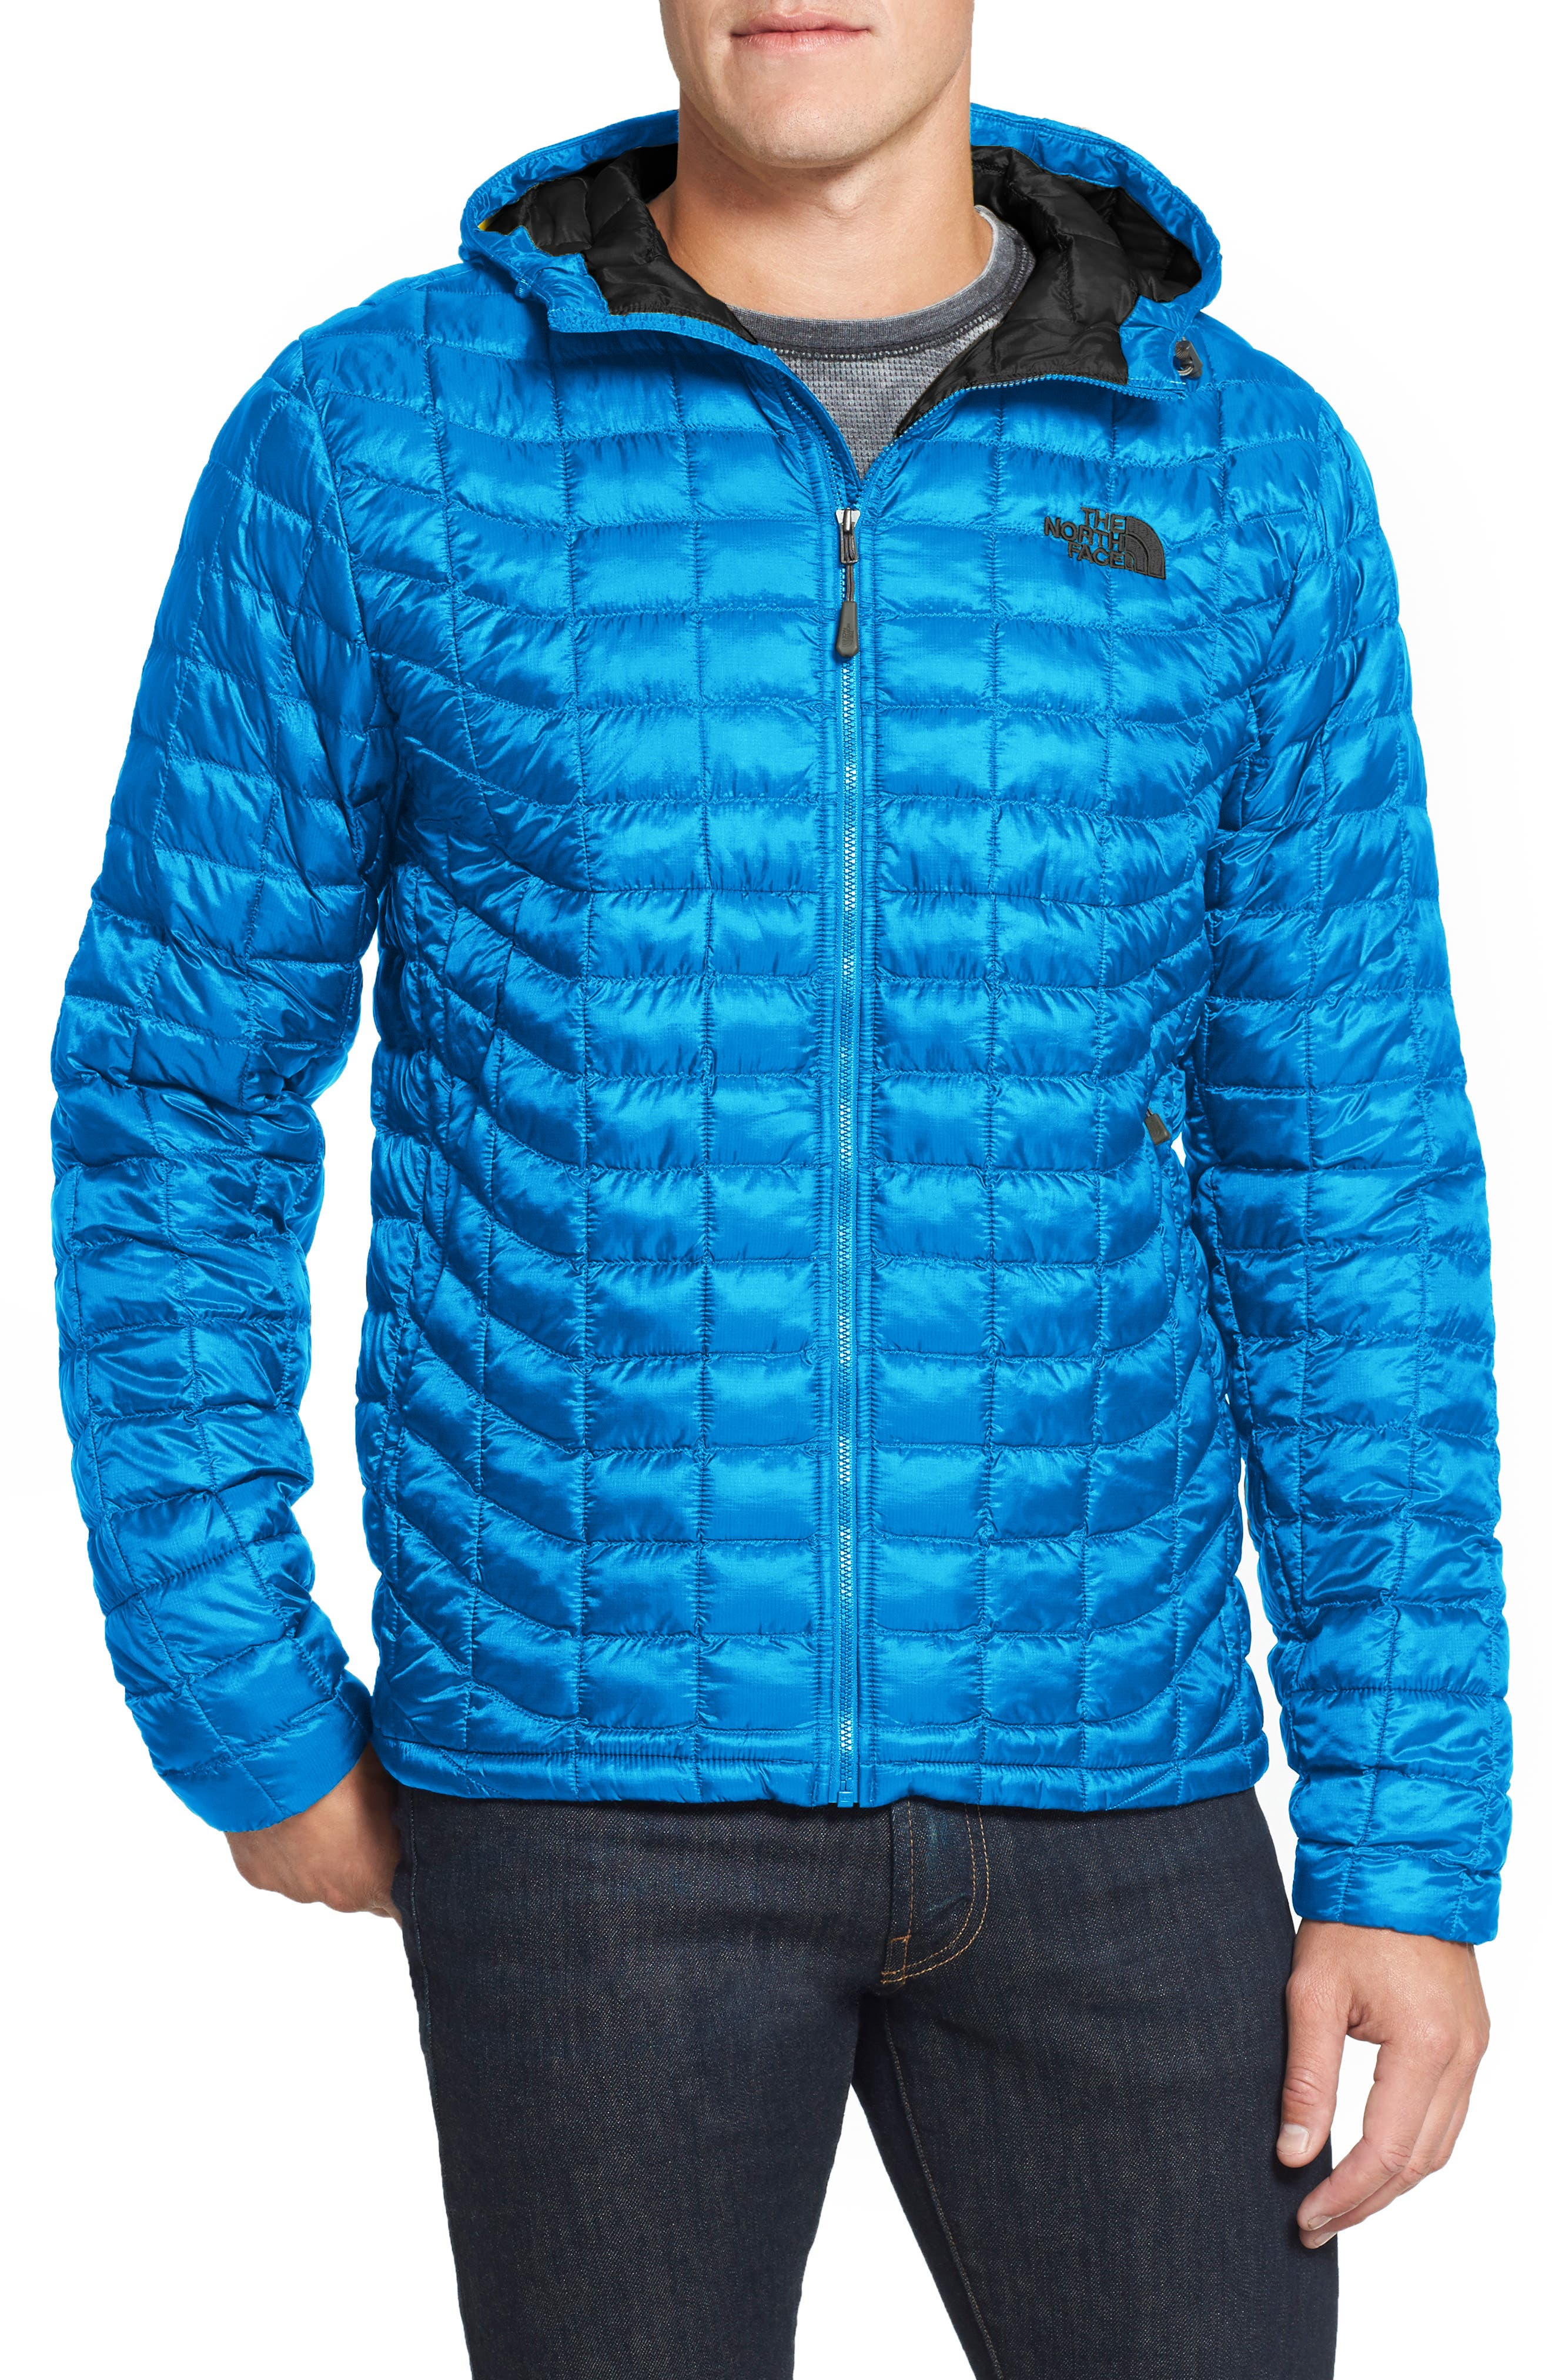 THE NORTH FACE ThermoBall<sup>™</sup> PrimaLoft<sup>®</sup> Hoodie Jacket